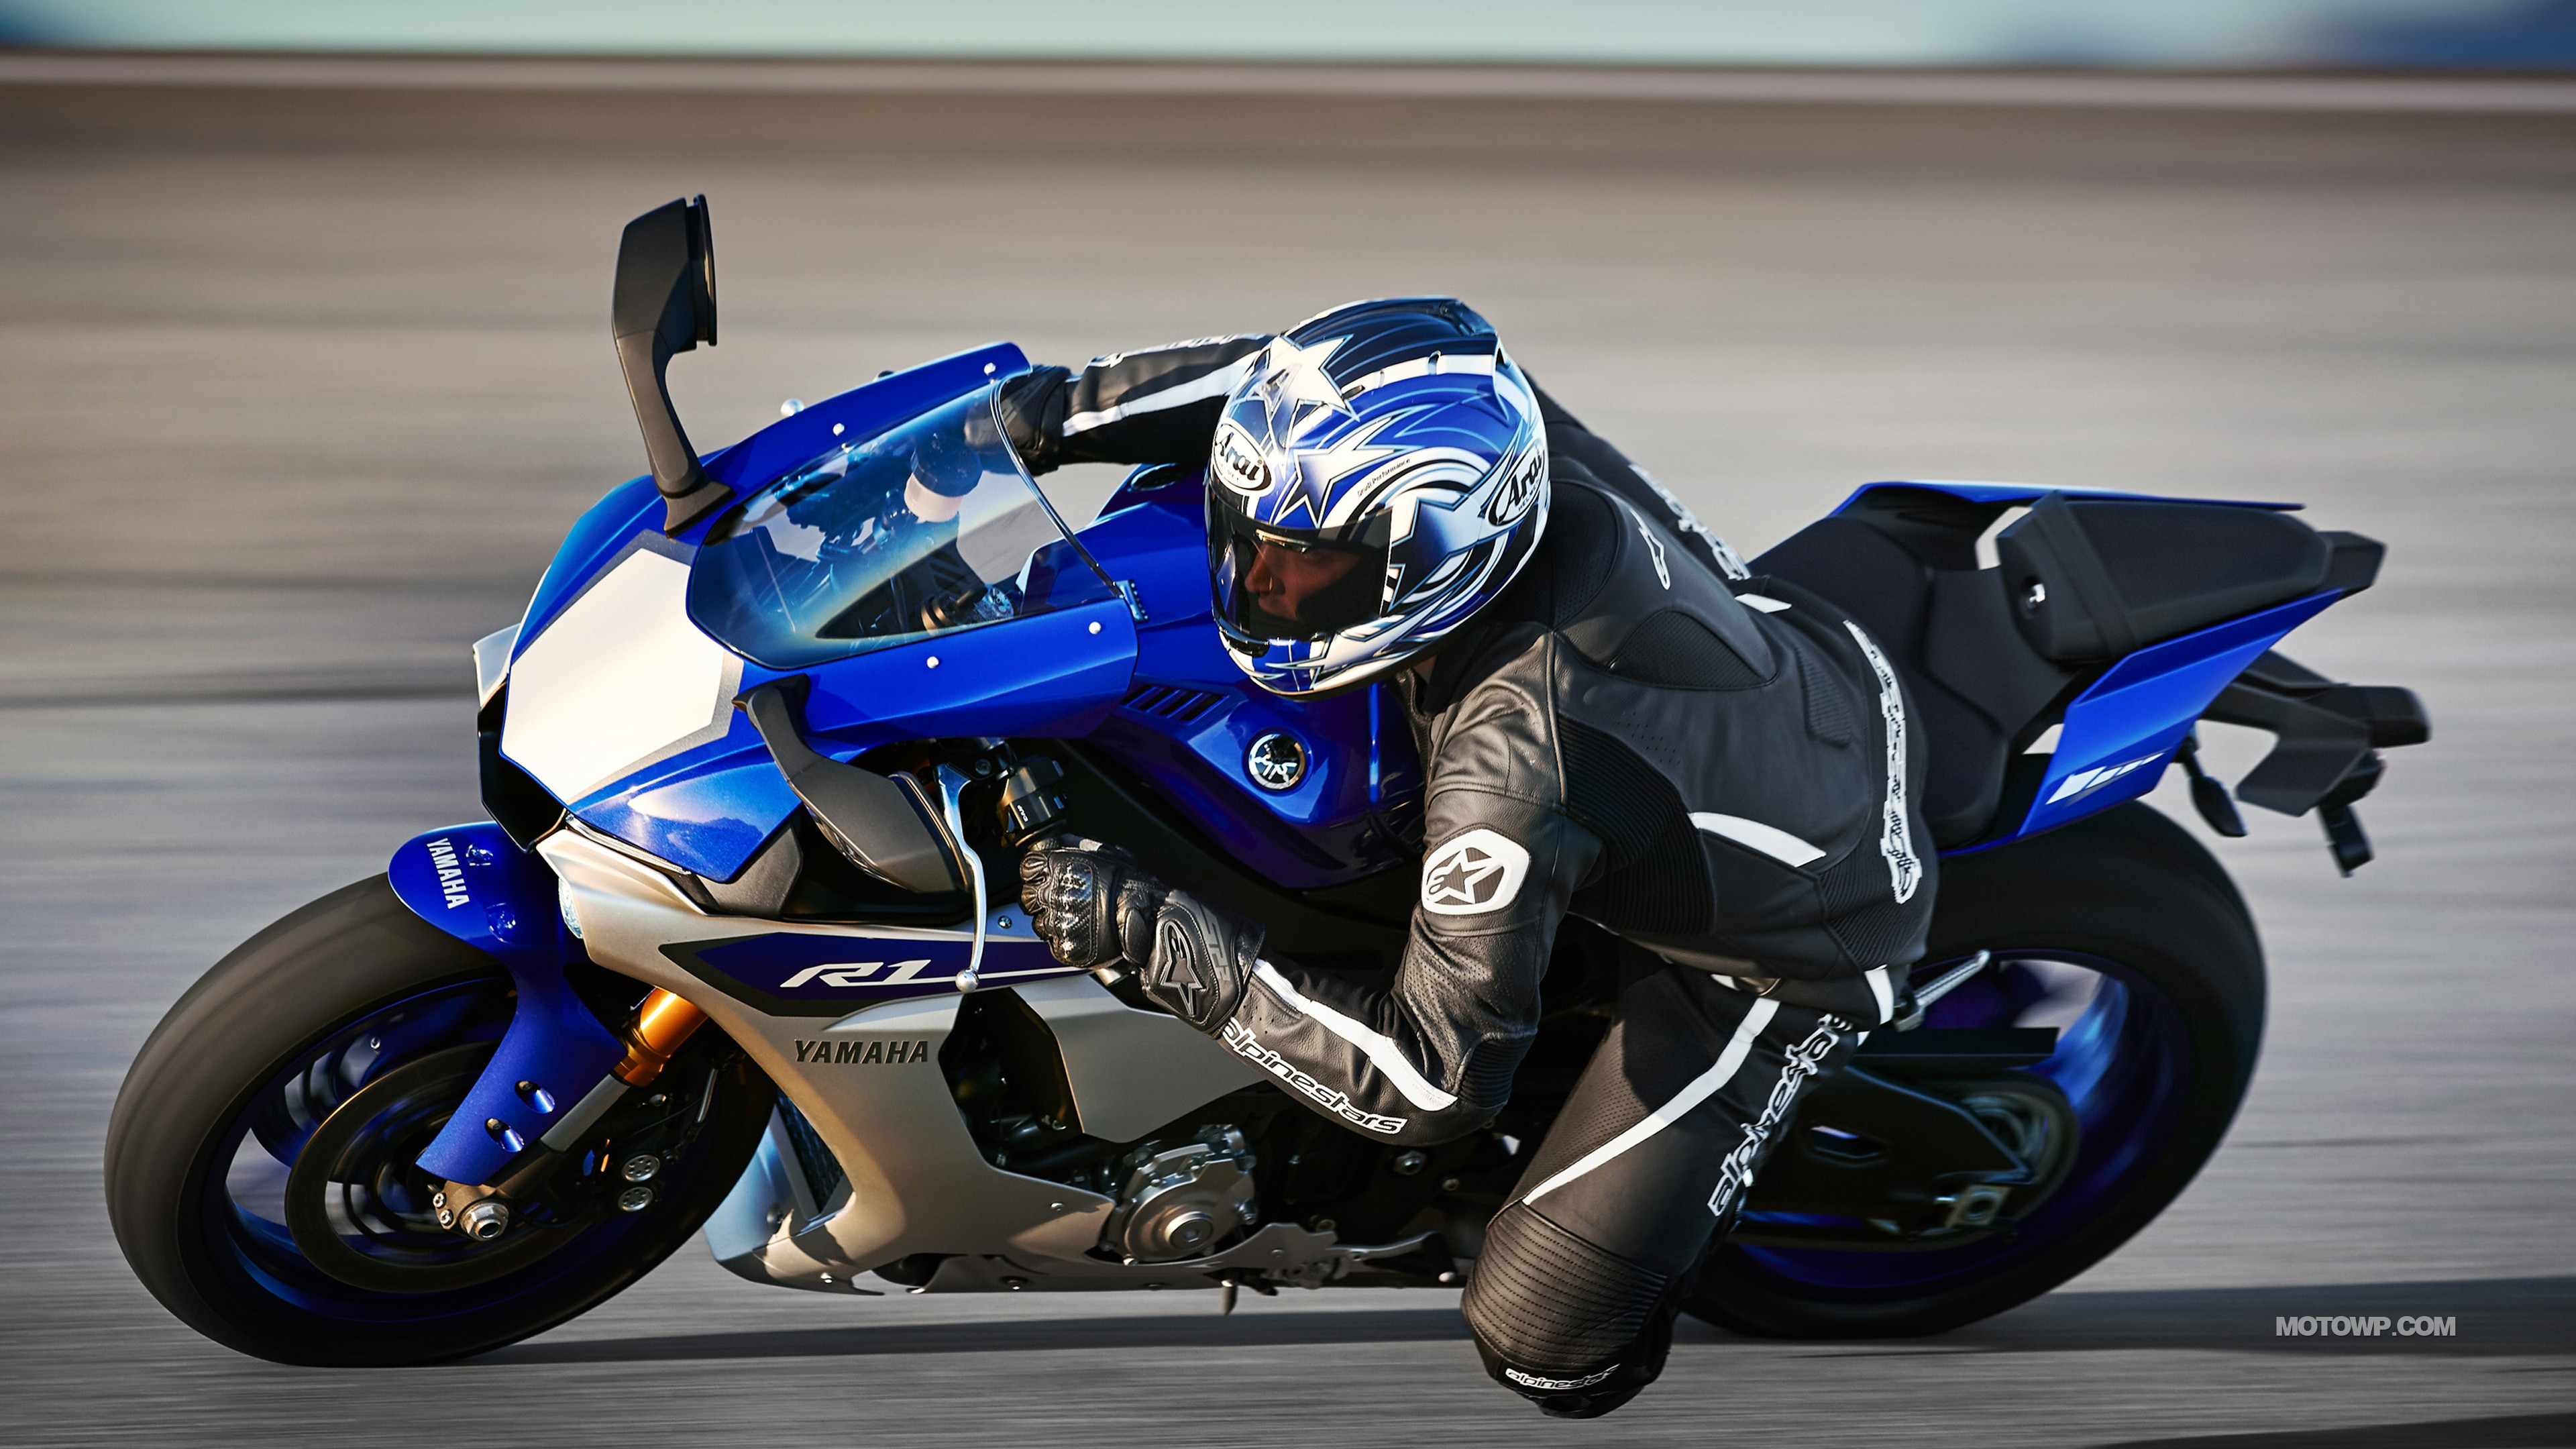 Res: 3840x2160, Motorcycles wallpapers Yamaha YZF-R1 - 2015